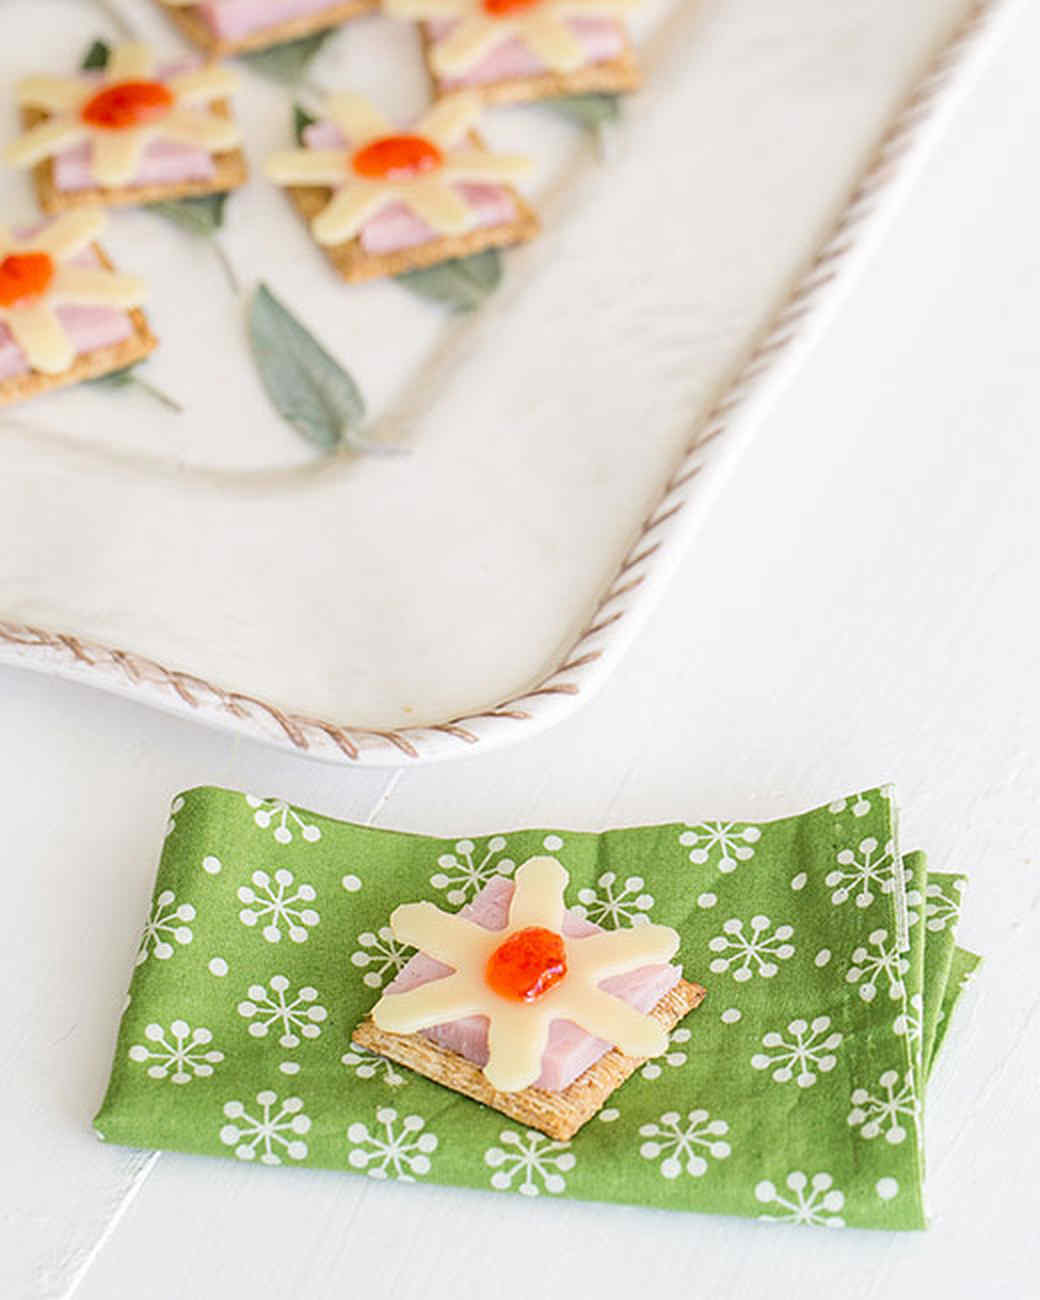 triscuit-ham-and-swiss-with-jalapeno-jelly-1214.jpg